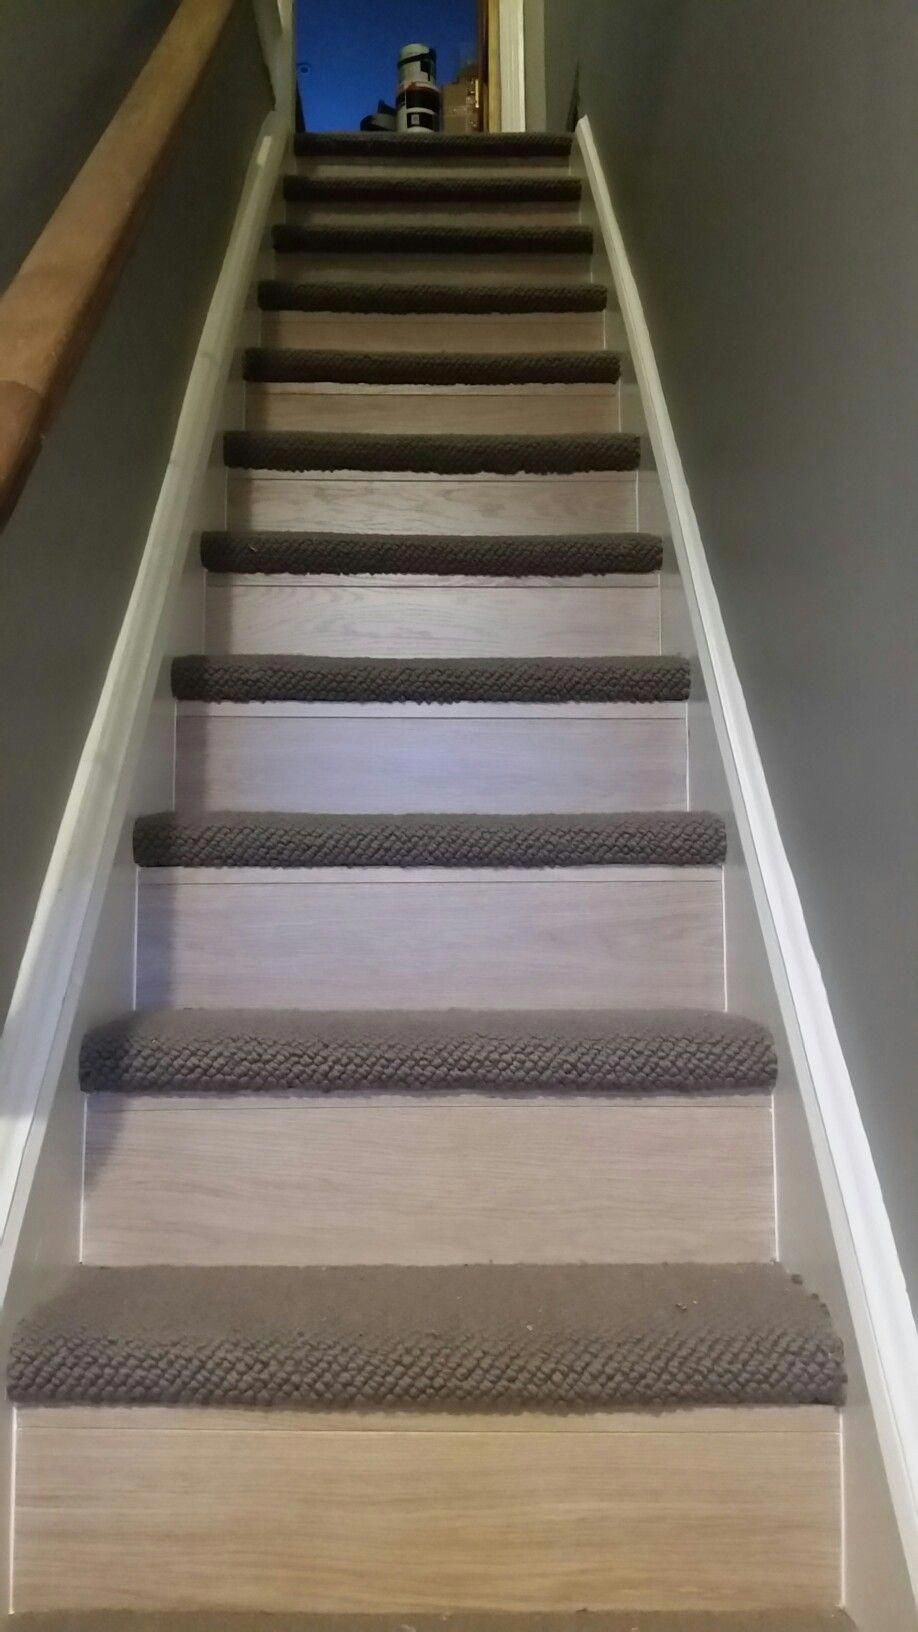 Discount Carpet Runners For Hall PicturesOfCarpetRunners